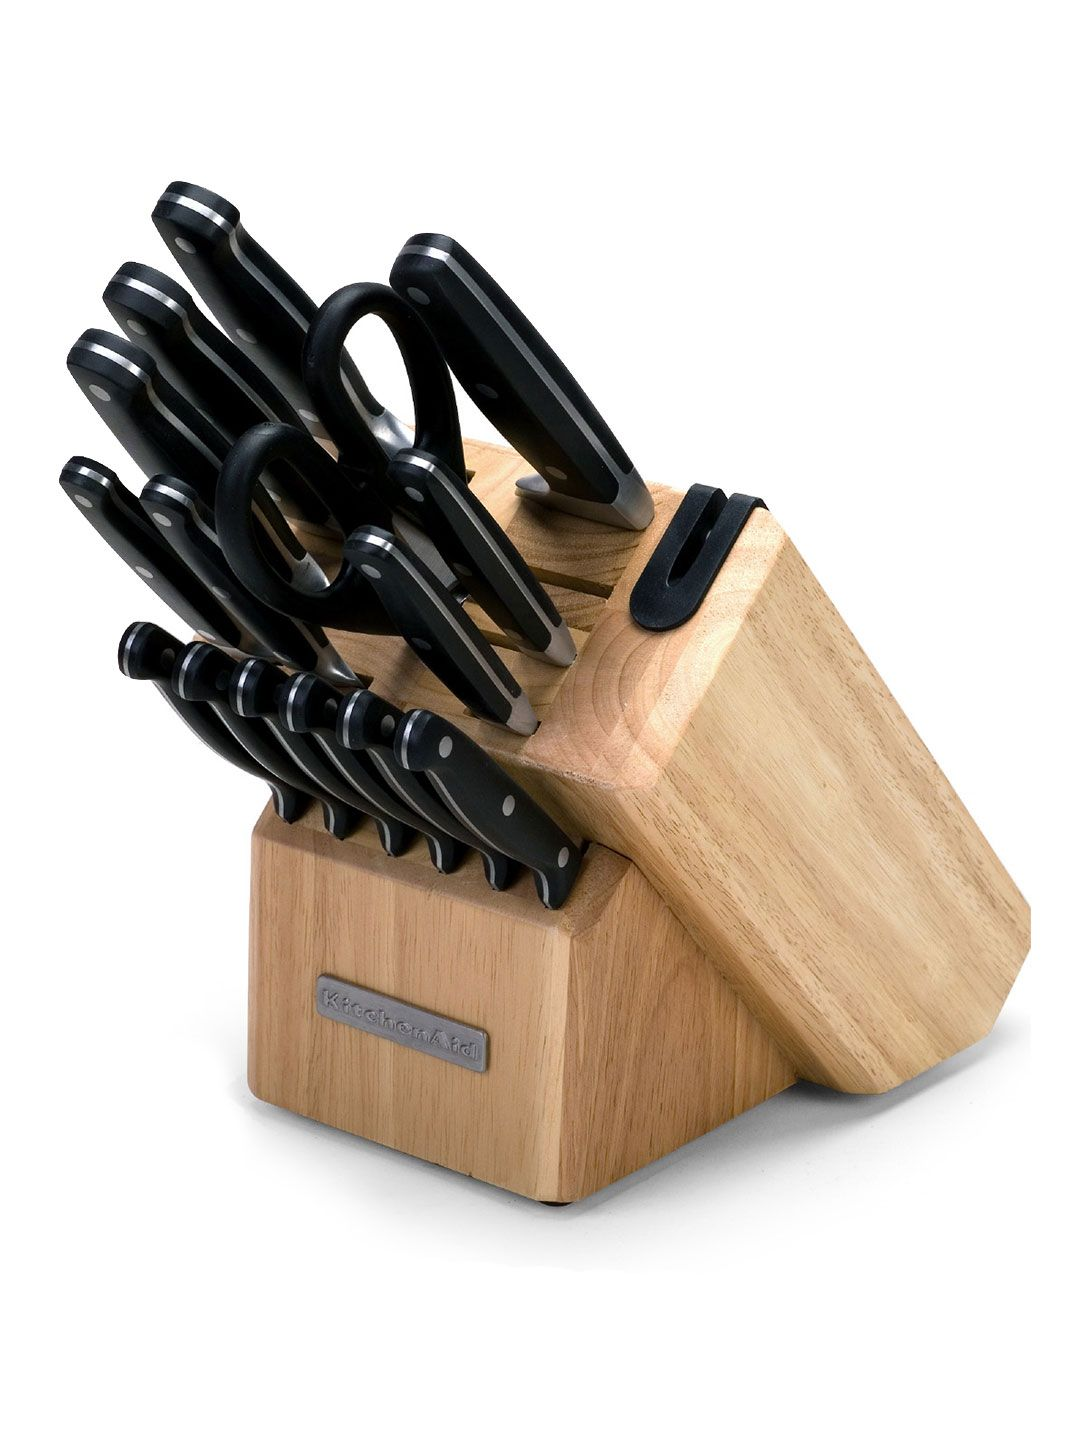 Triple Riveted Cutlery Set 16 PC Home Furniture